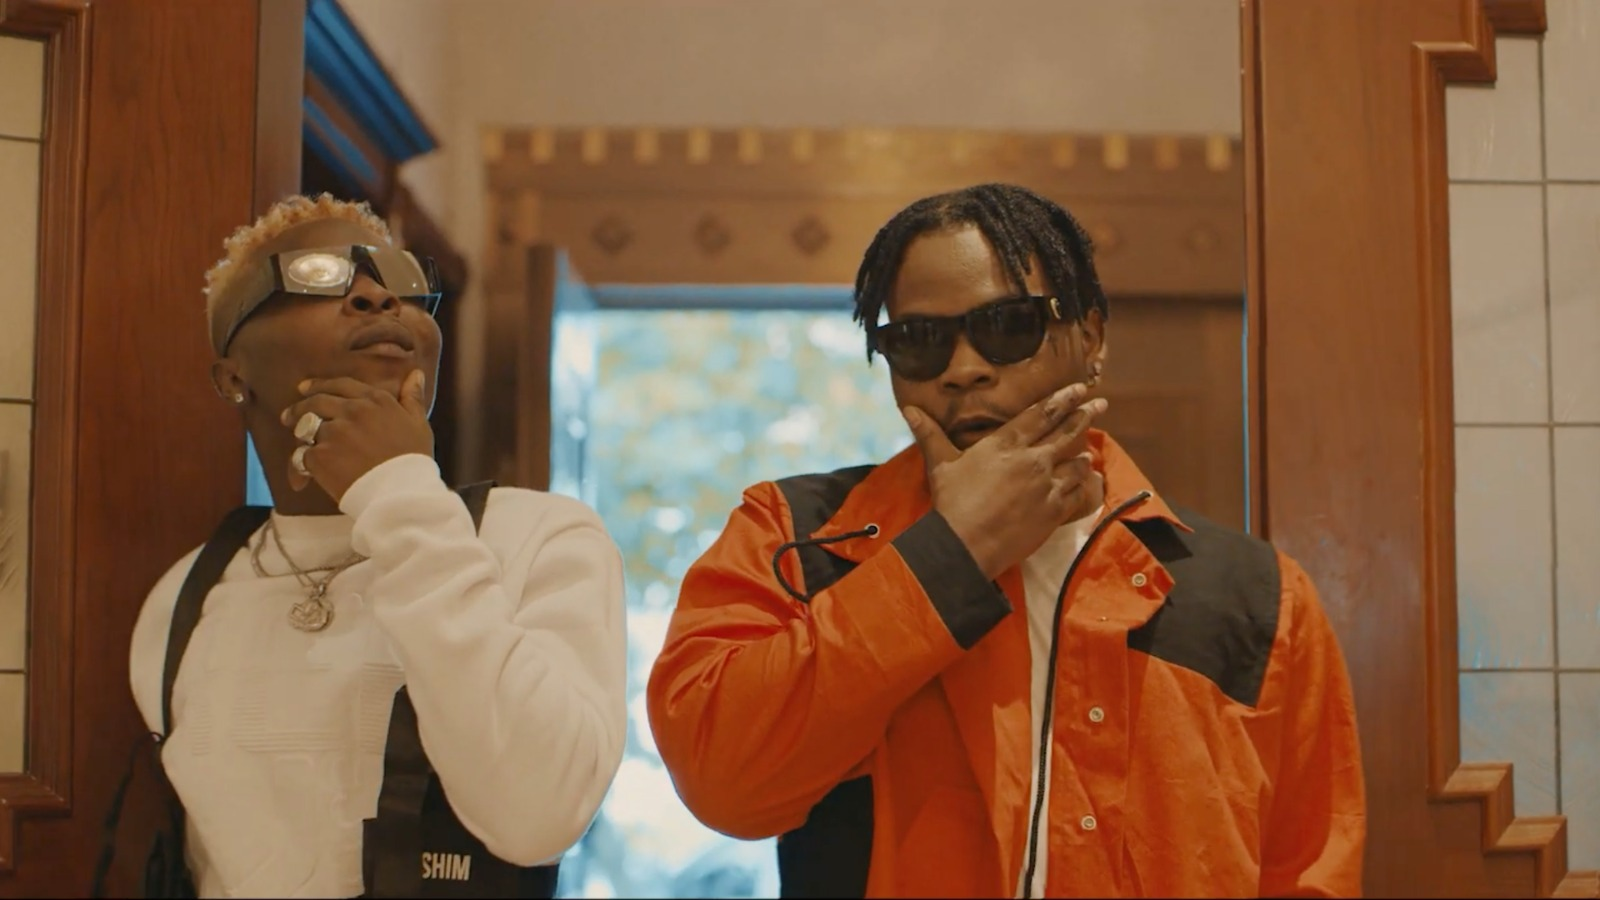 VIDEO: Wale Turner ft. Olamide - Bosi